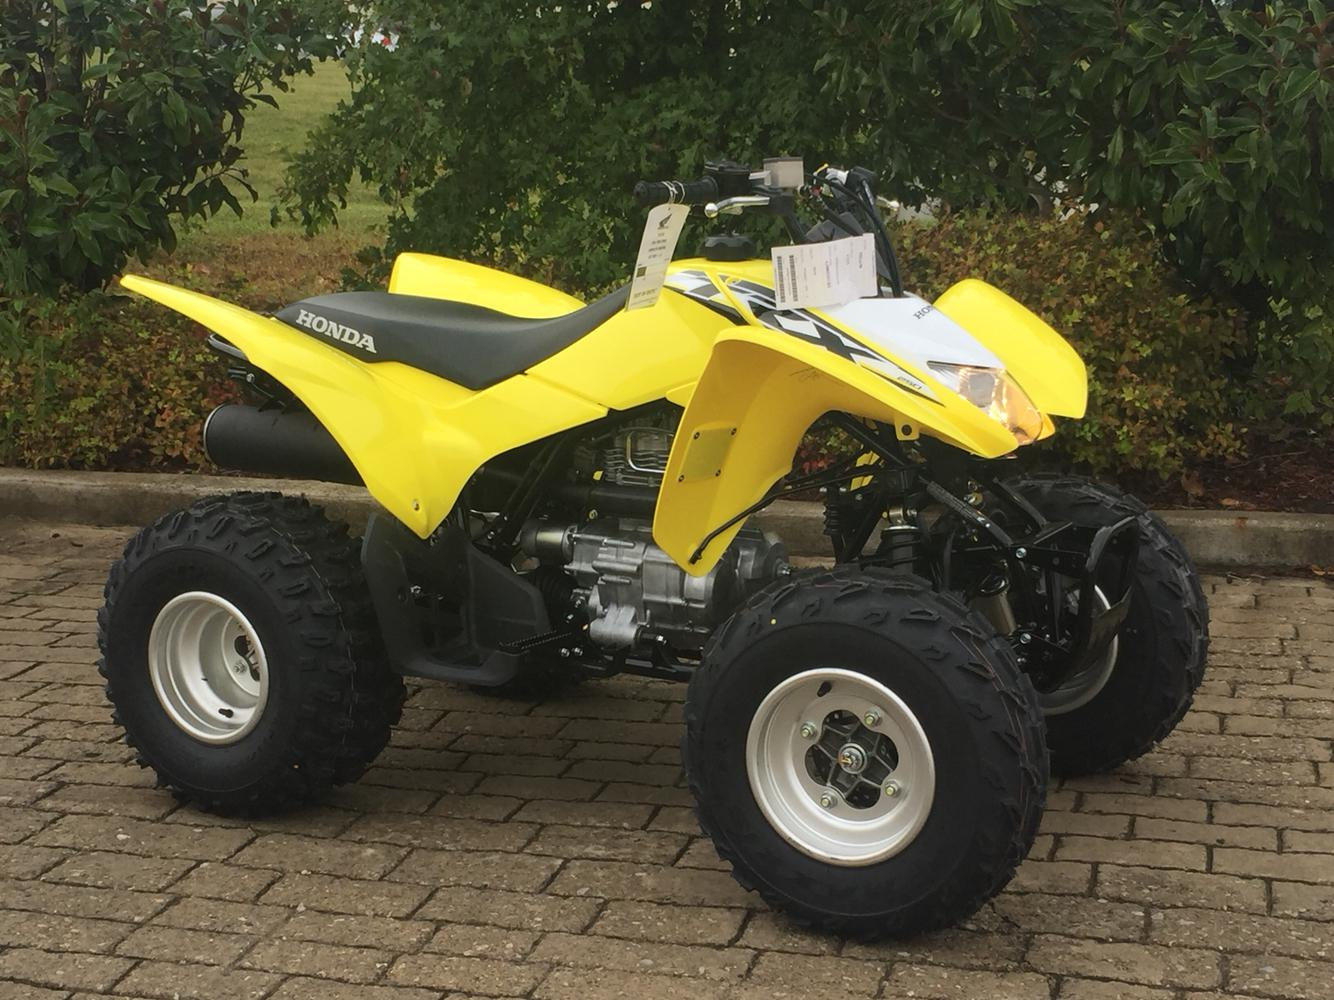 2018 honda 250x. Plain 250x 2018 Honda FOURTRAX 250X For Sale In Maysville KY  Heritage  Powerhouse 800 3559515 In Honda 250x